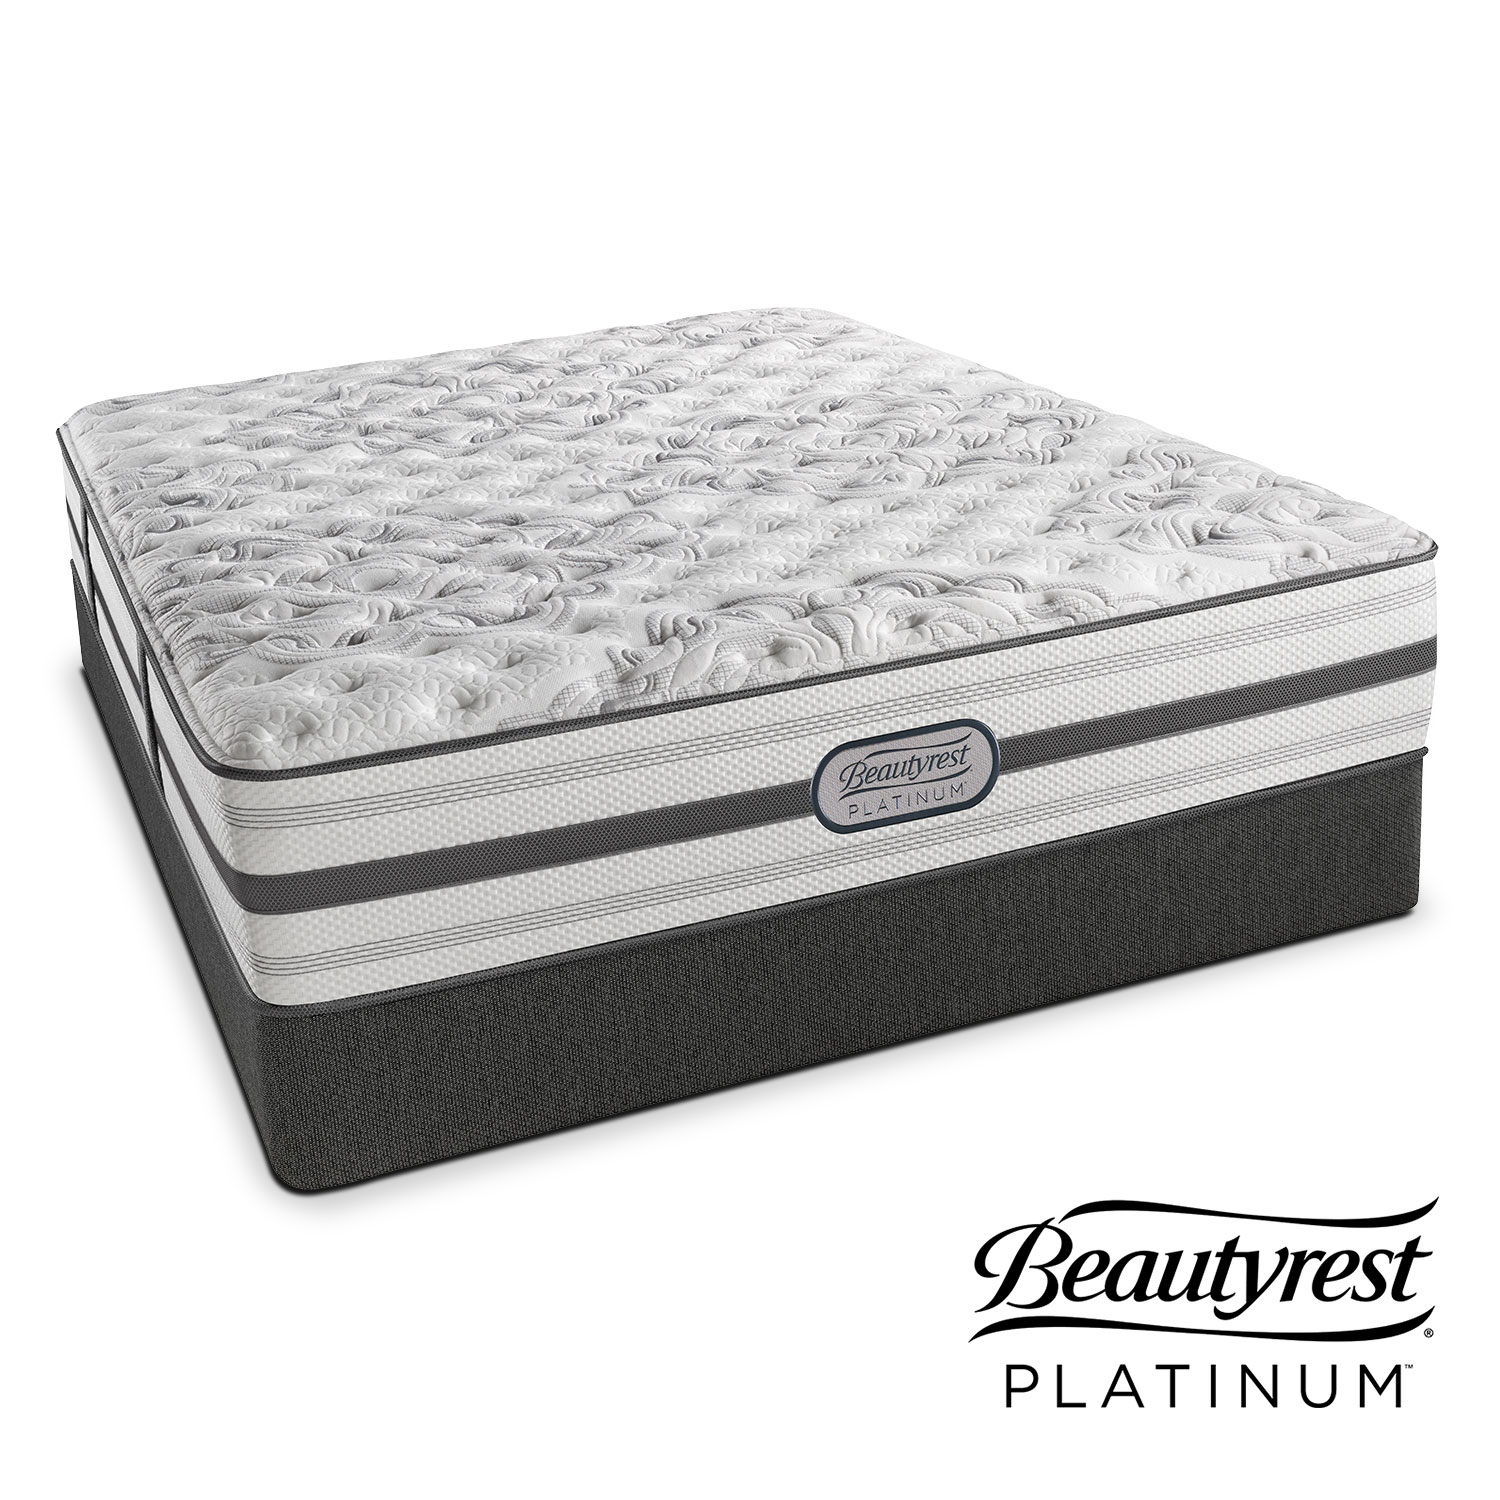 Mattresses and Bedding - Helena Extra-Firm Full Mattress and Low-Profile Foundation Set